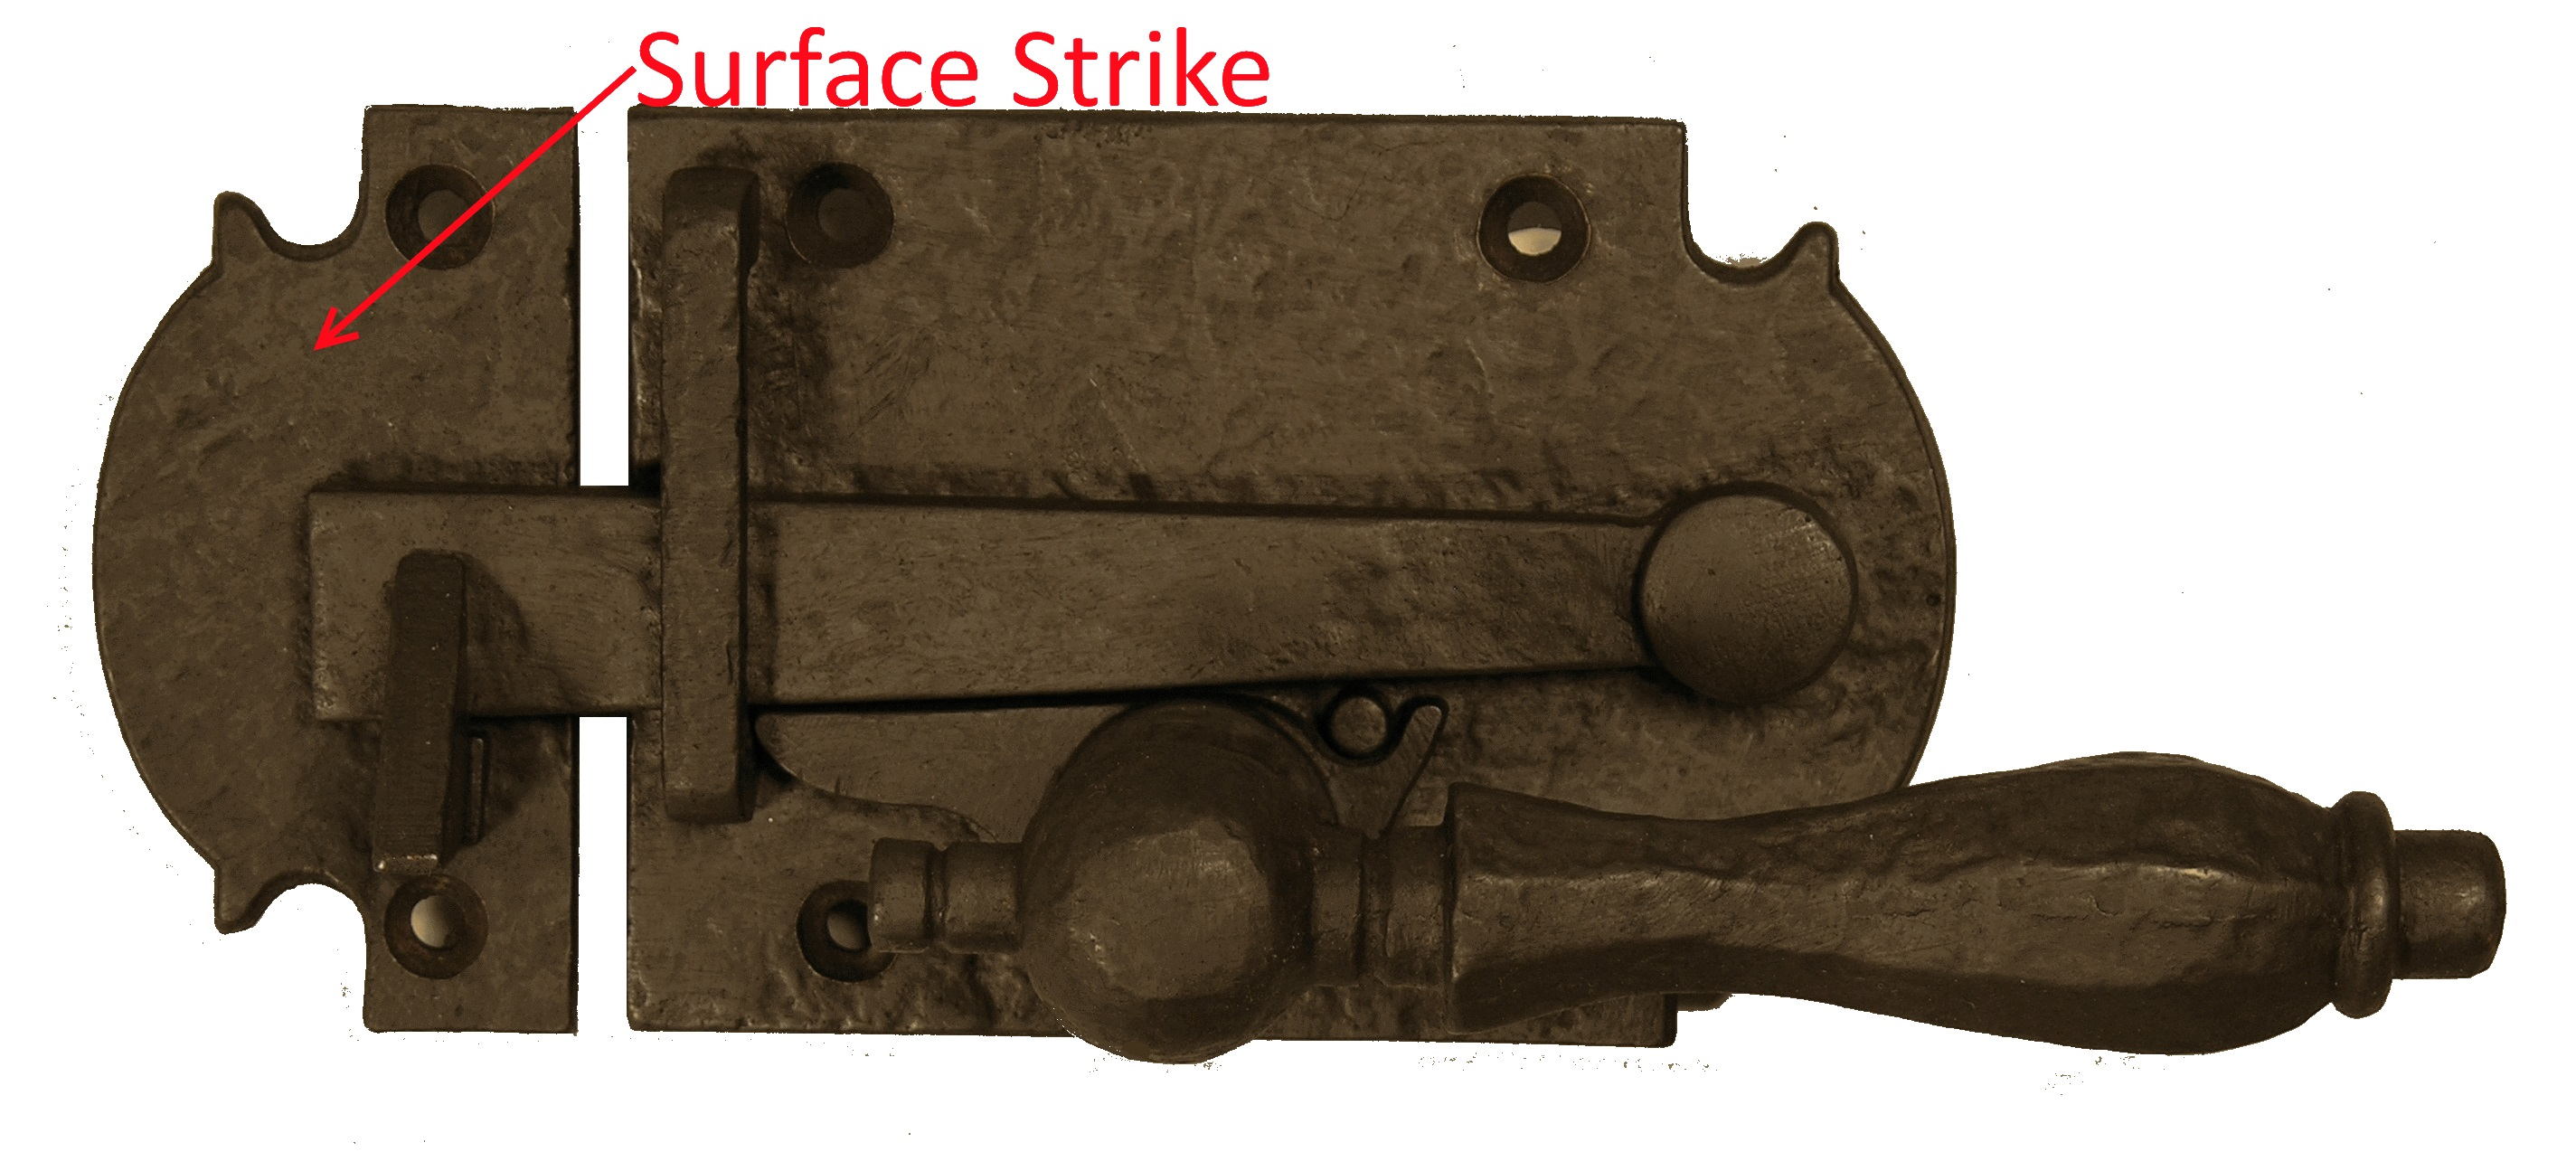 Surface Strike